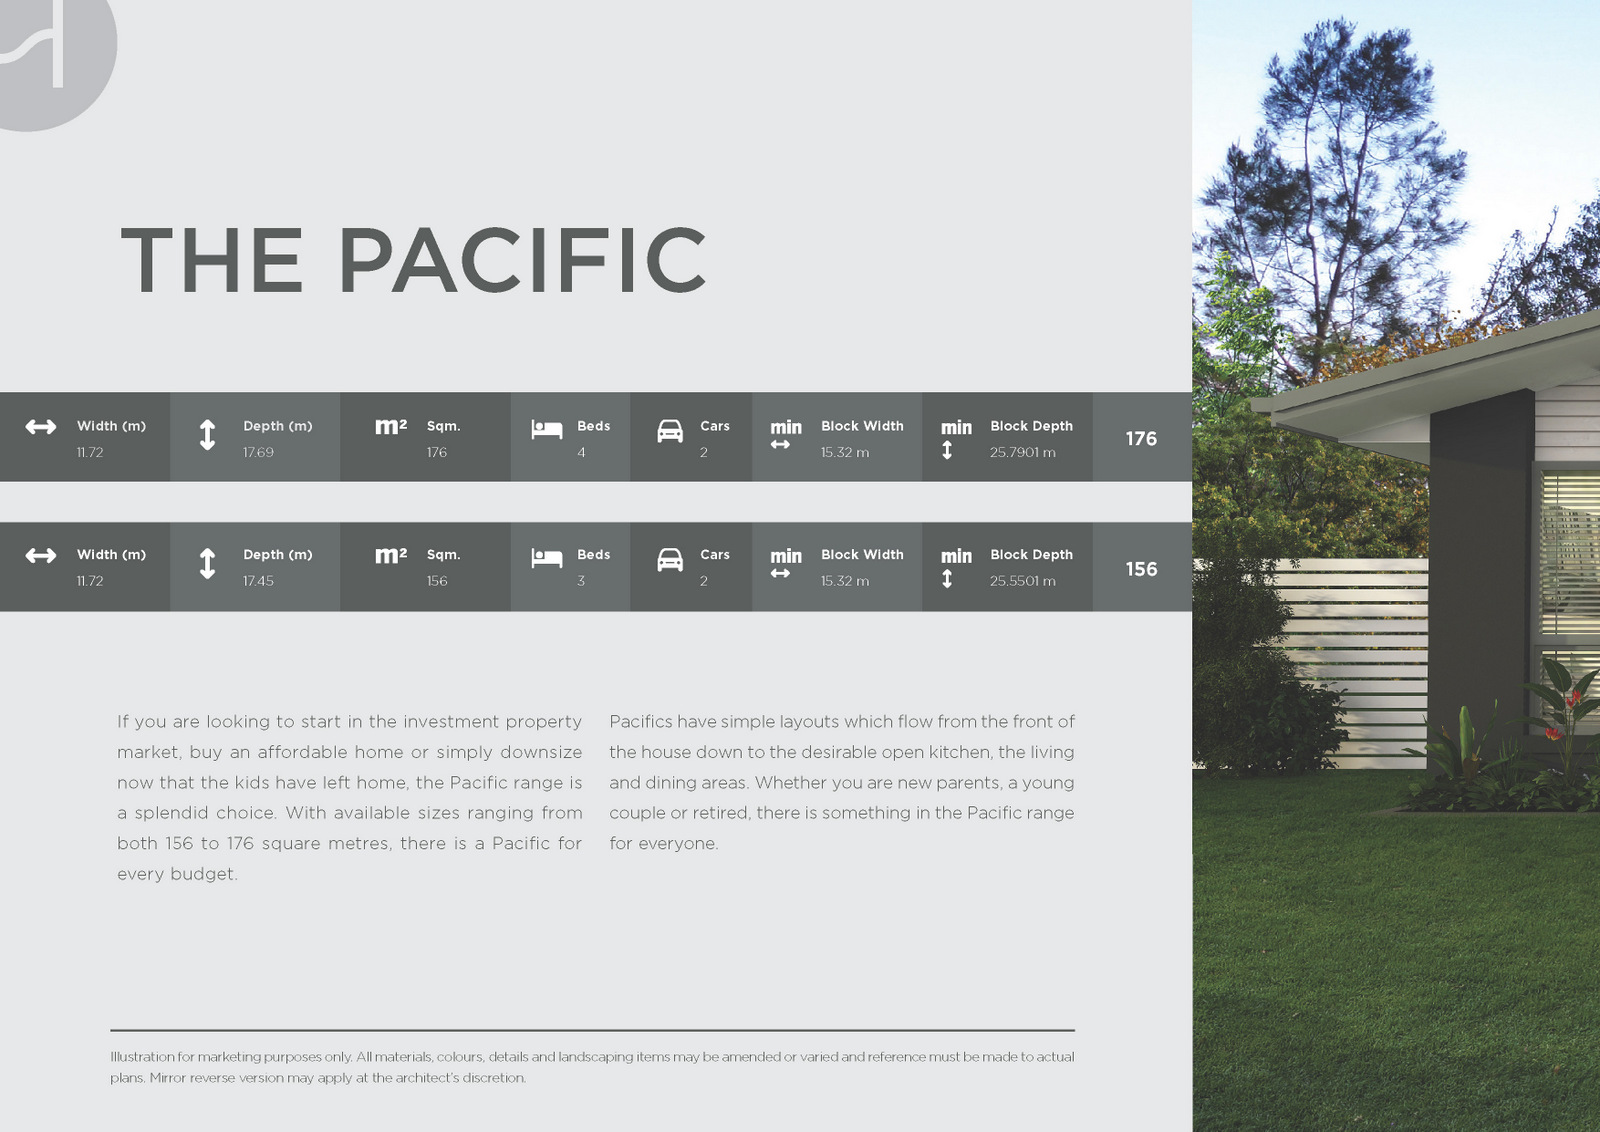 46-homecorp-brochure-2015_correct colours_Page_46.jpg